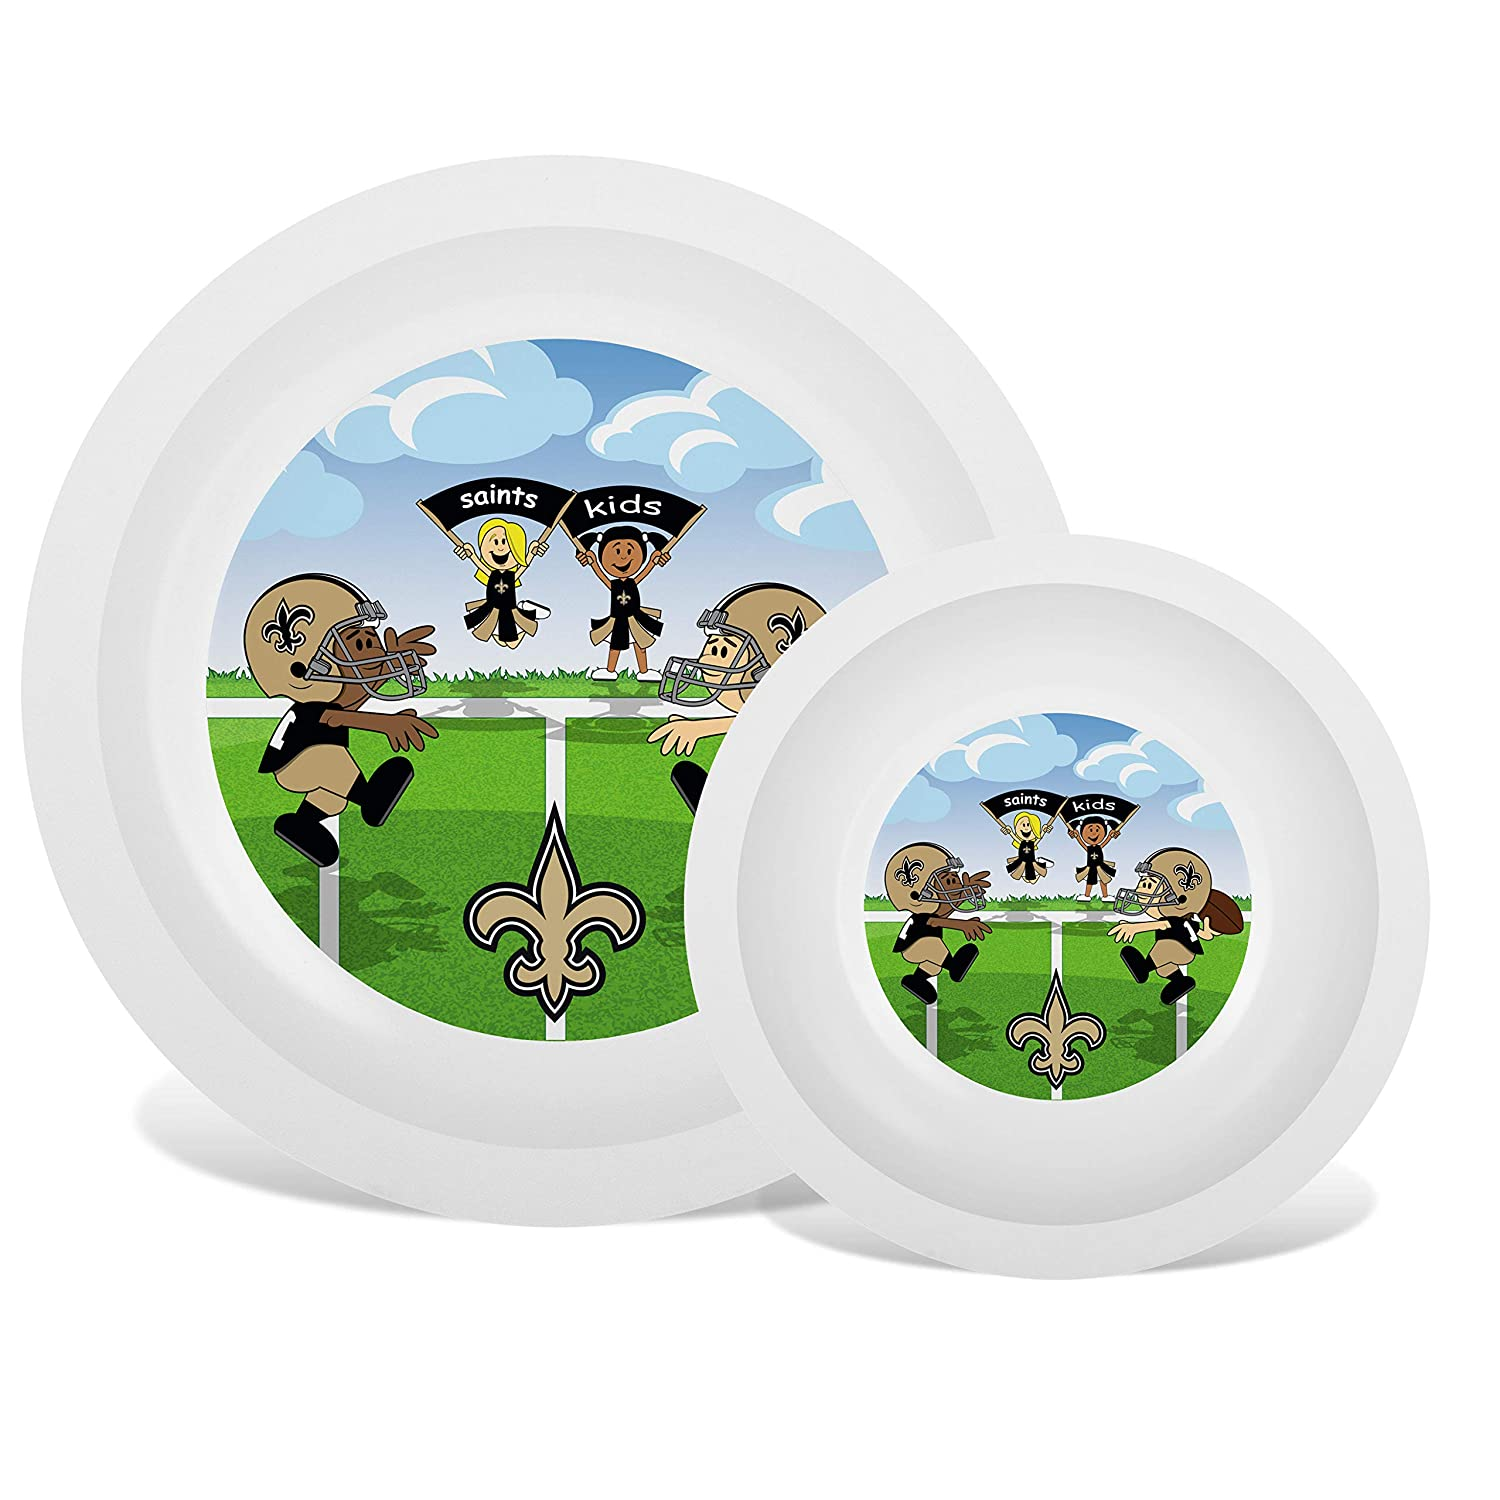 Baby Fanatic NFL Legacy Infant Plate & Bowl Set, New Orleans Saints, for Ages 6 Months & Up